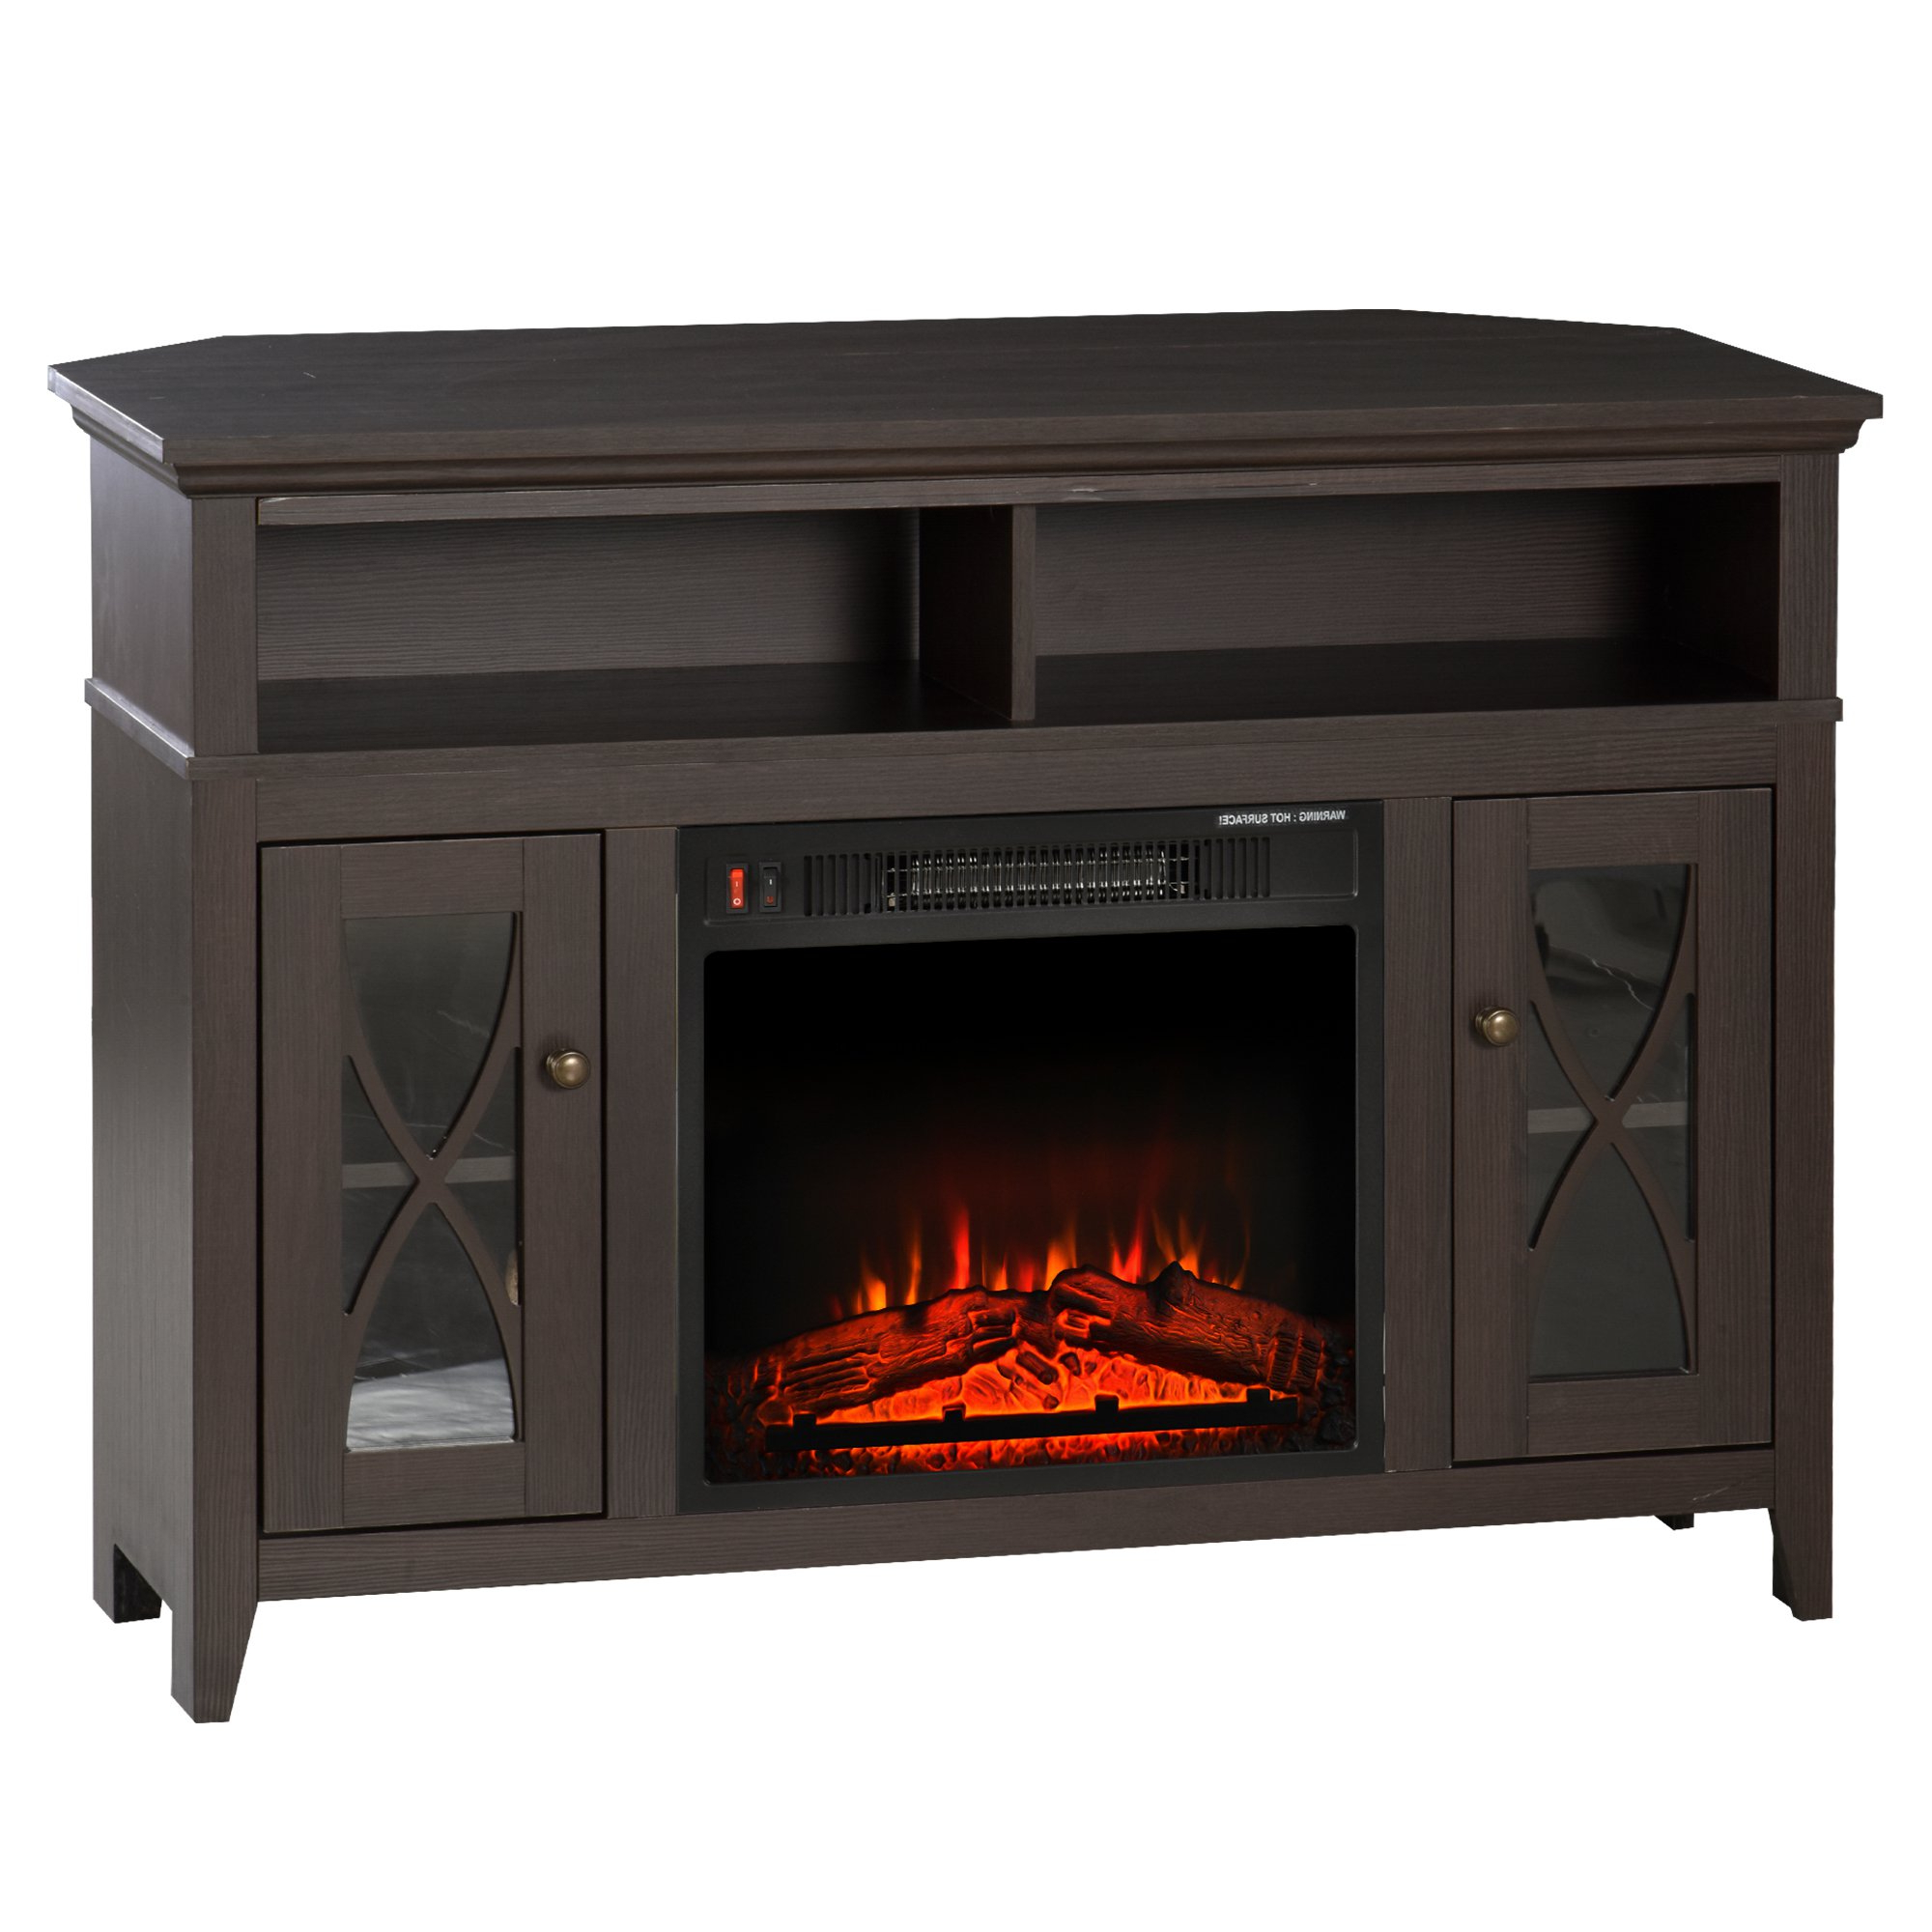 Homcom 2 In 1 Tv Stand And Electric Fireplace With 2 Cable Pertaining To Electric Fireplace Tv Stands With Shelf (View 2 of 20)